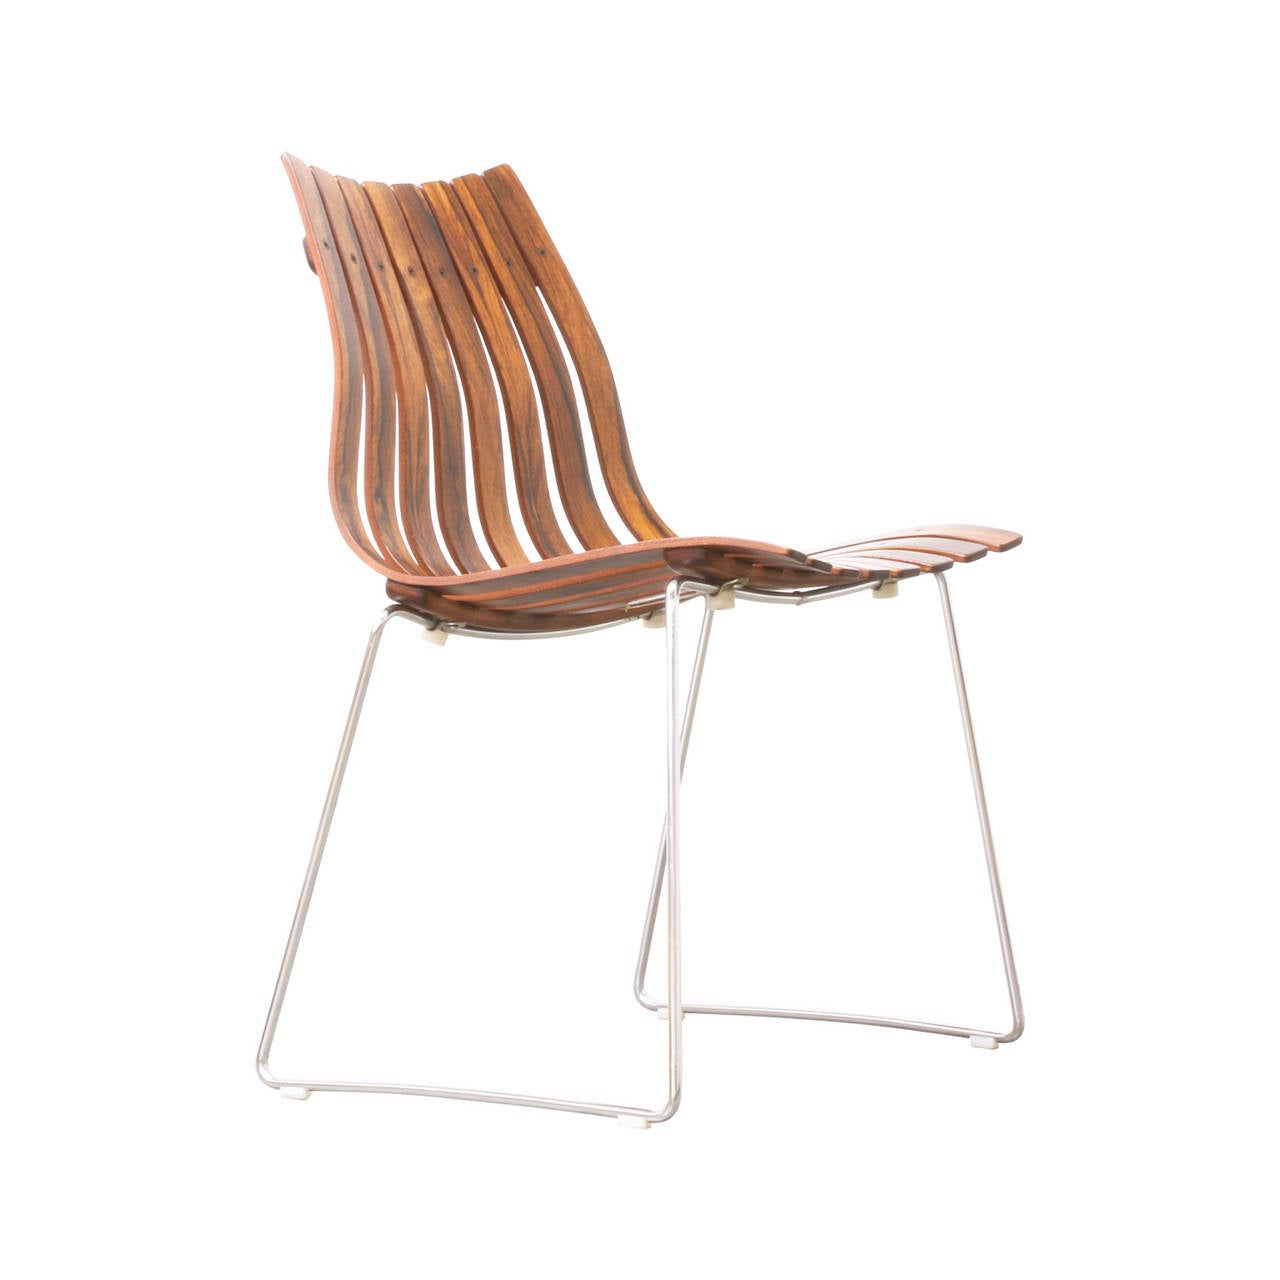 Hans brattrud scandia rosewood chair for hove mobler at for Furniture hove